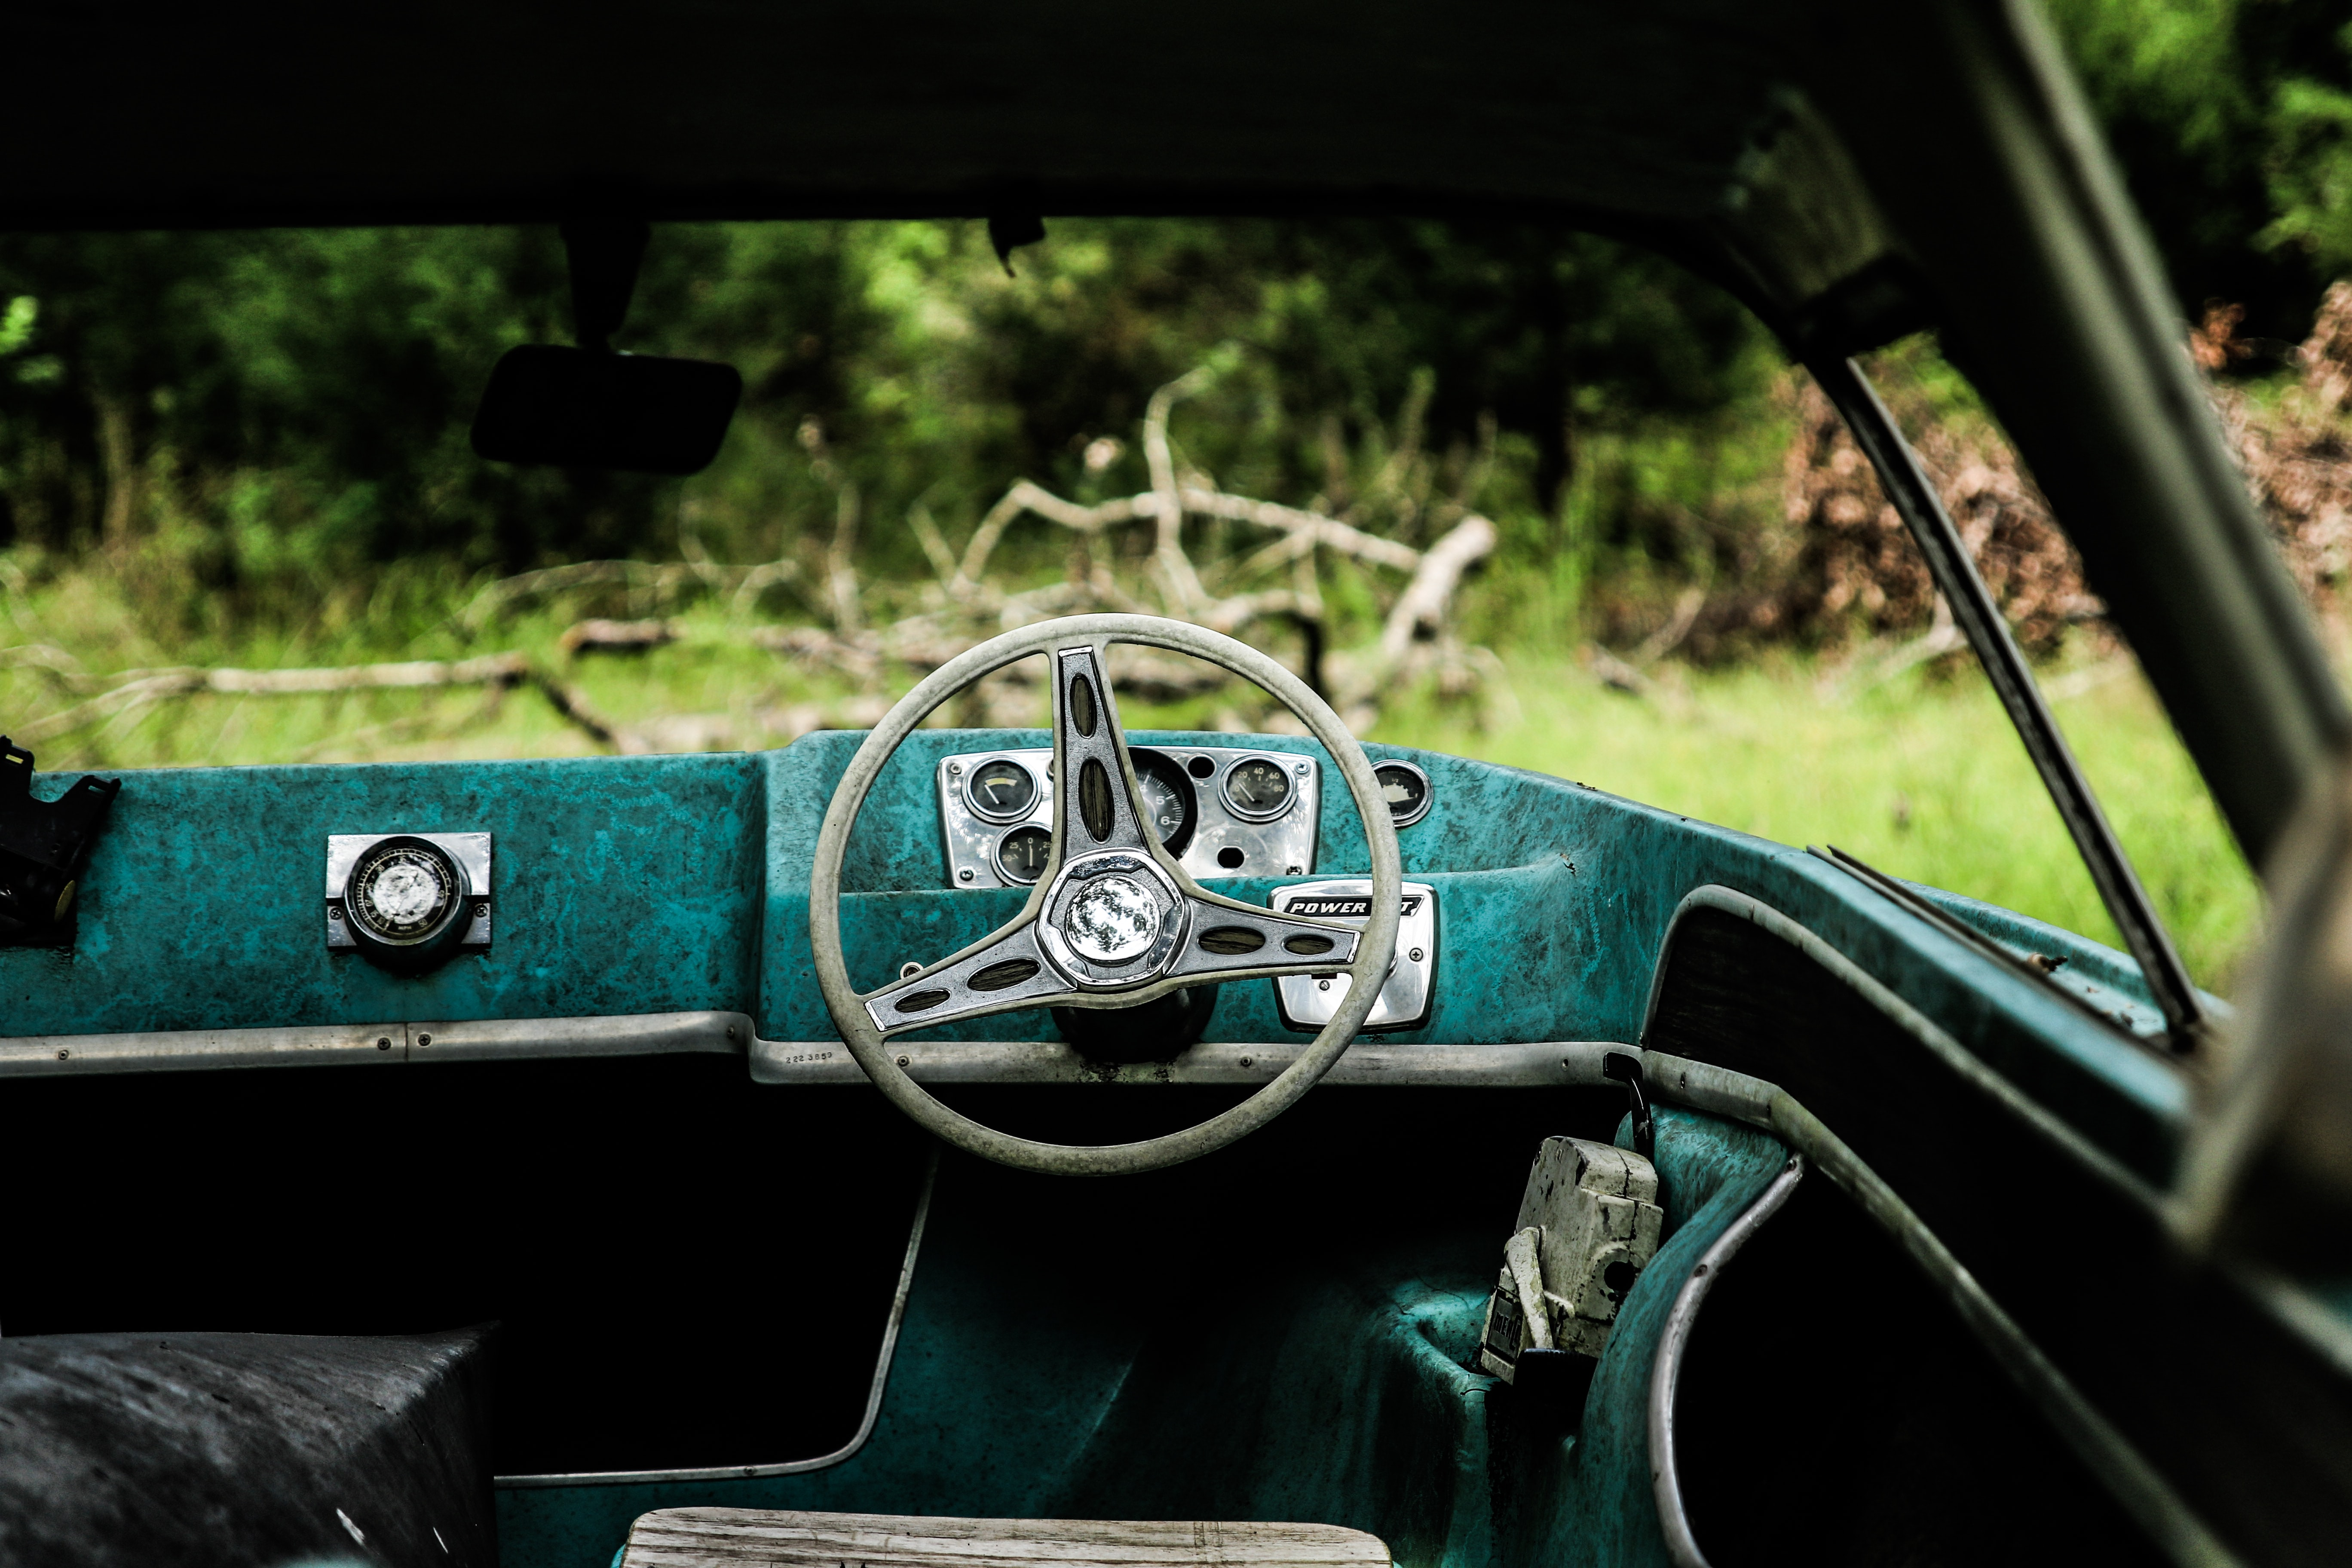 blue and black boat steering wheel interior near green grass field during daytime